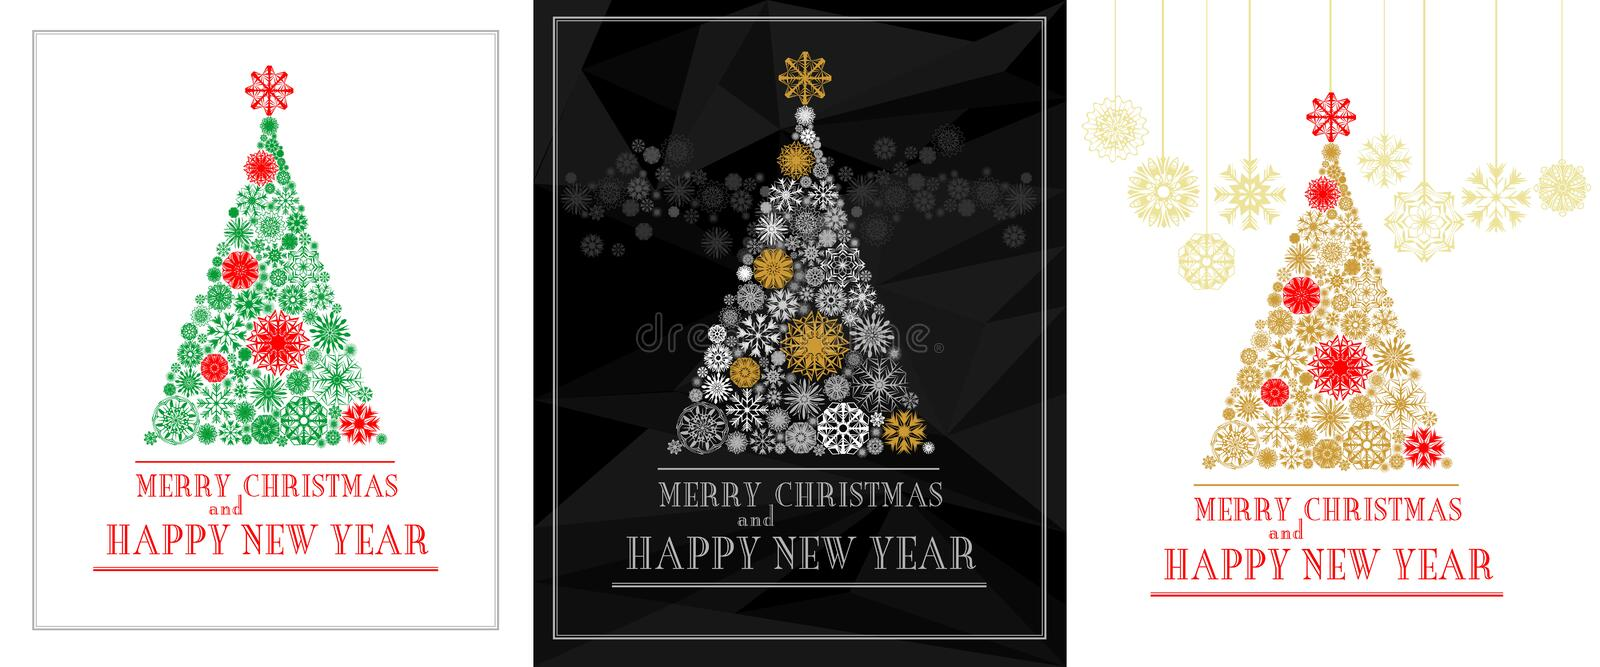 Merry Christmas and Happy New Year greeting cards with Christmas tree in snowflakes royalty free illustration